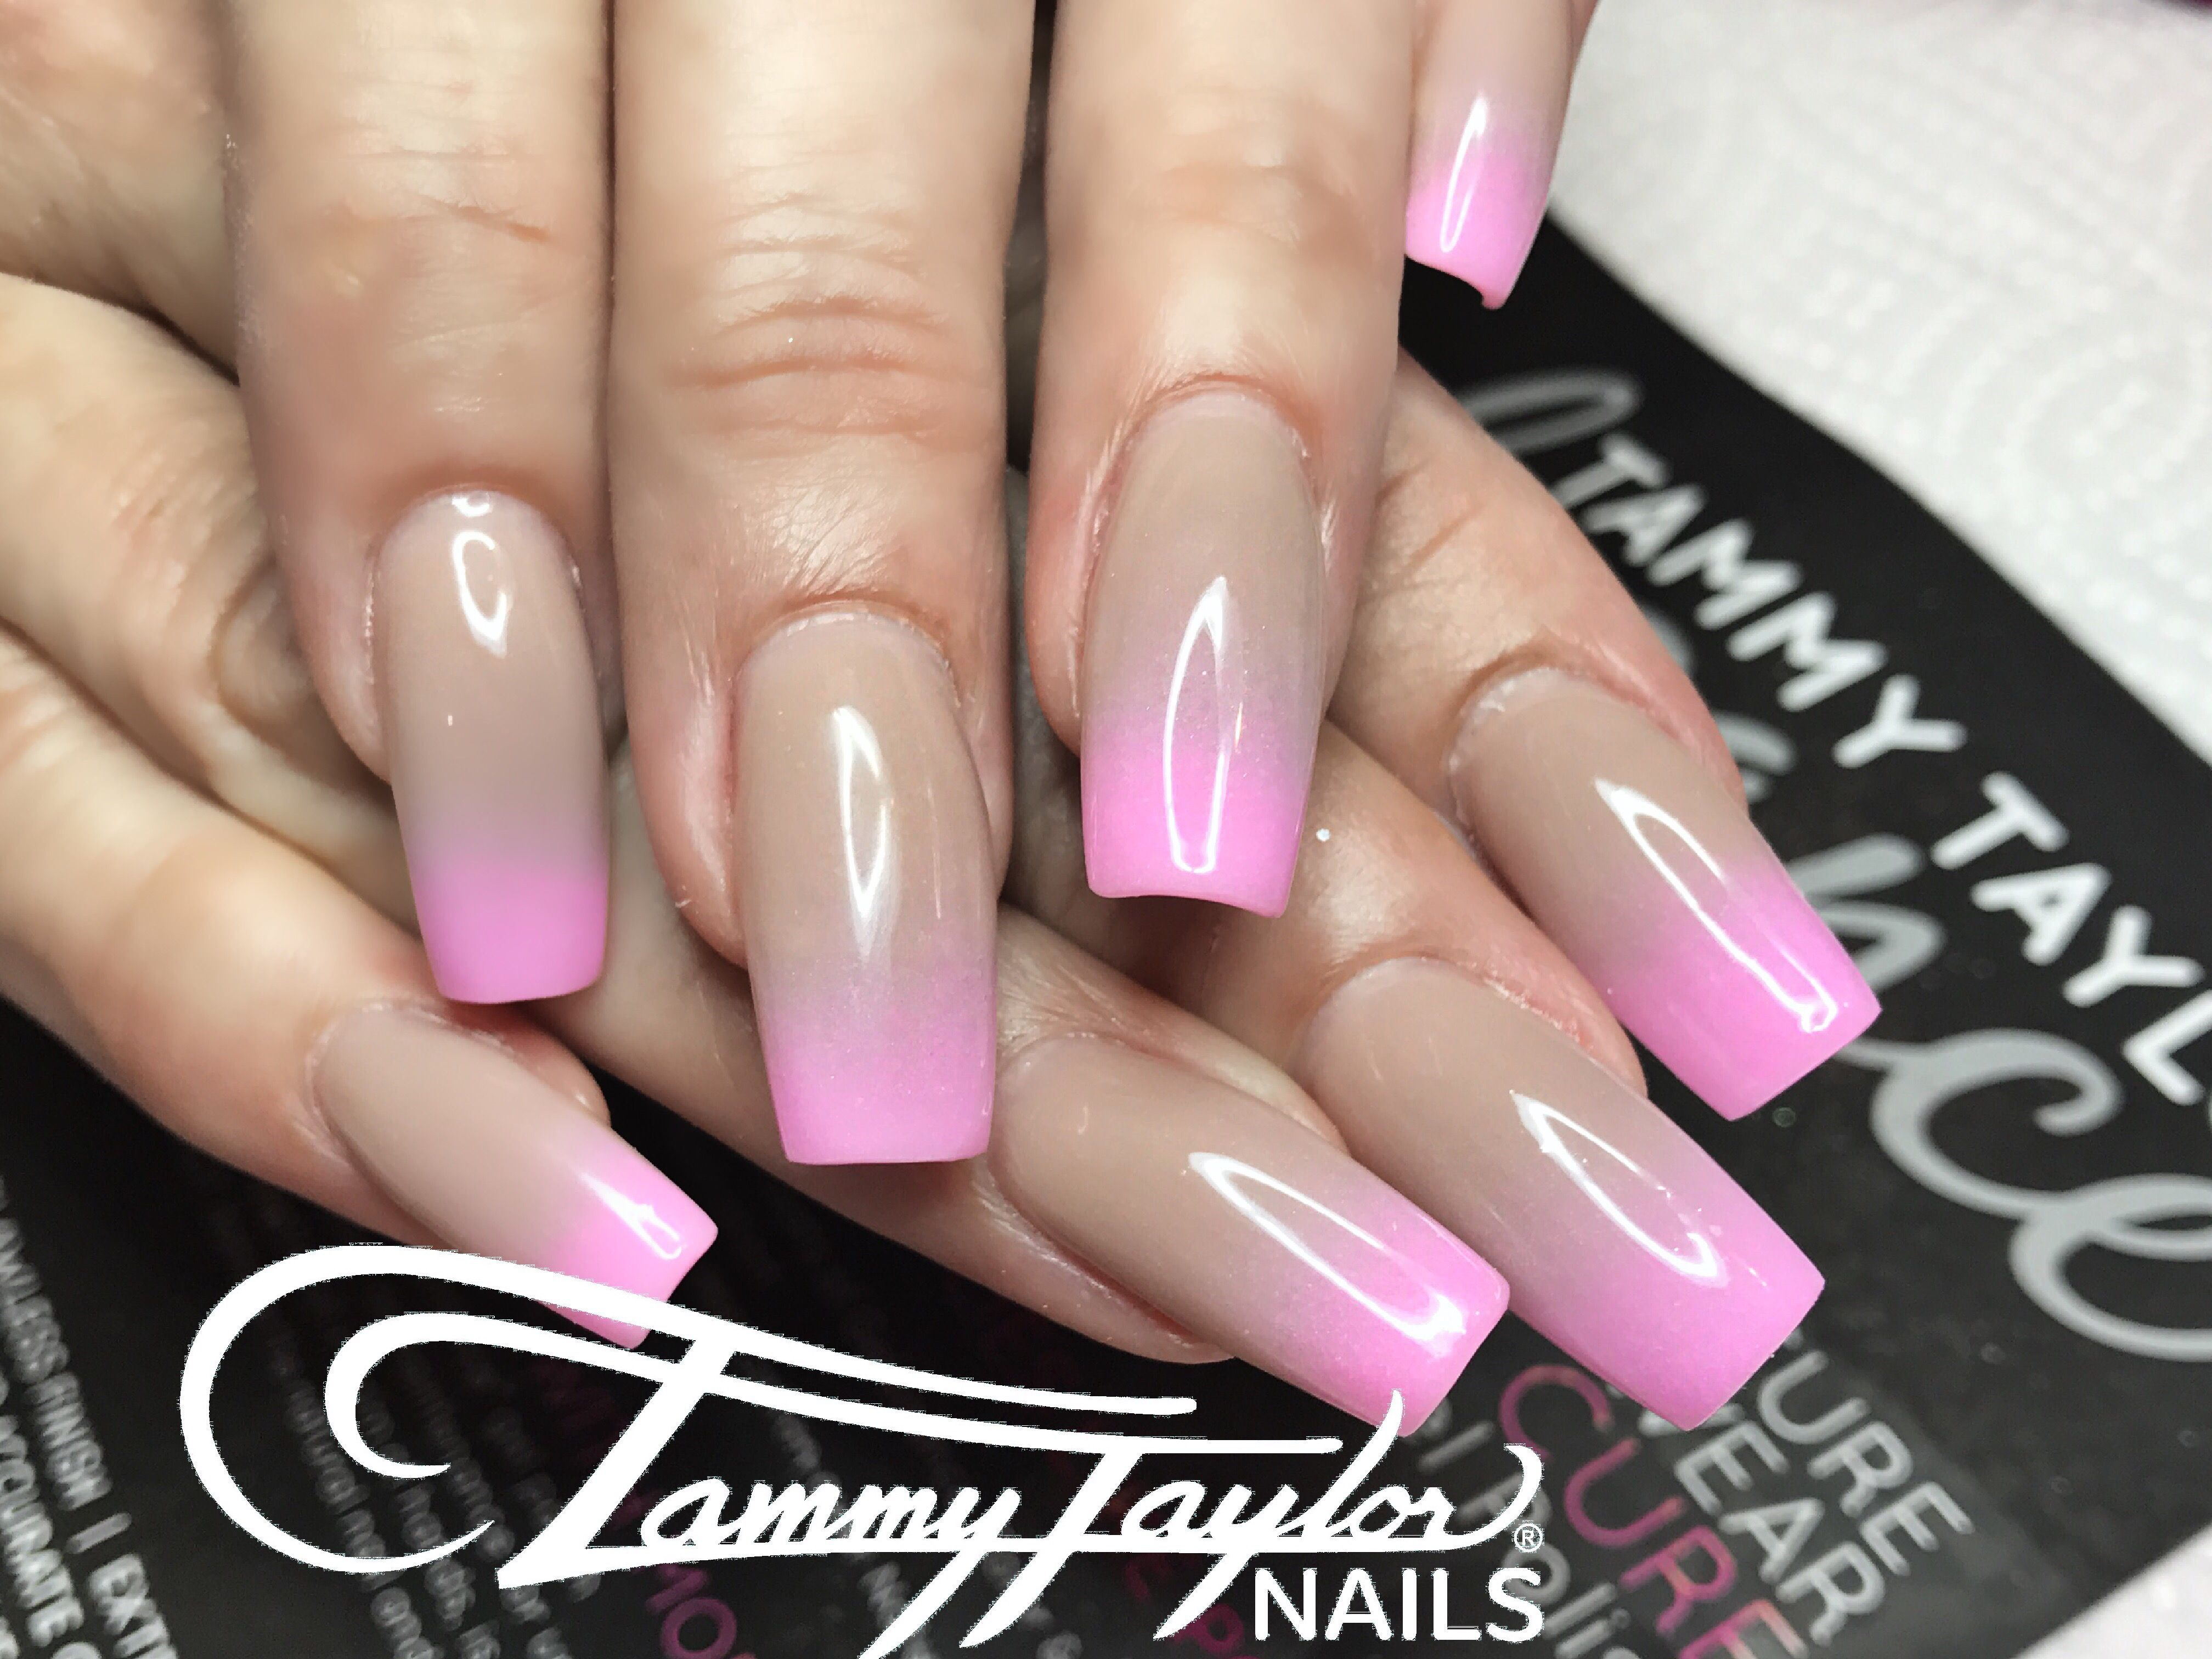 Tammy Taylor Nails SA Nude Ombre Nails Pink And Nude nails Best ...